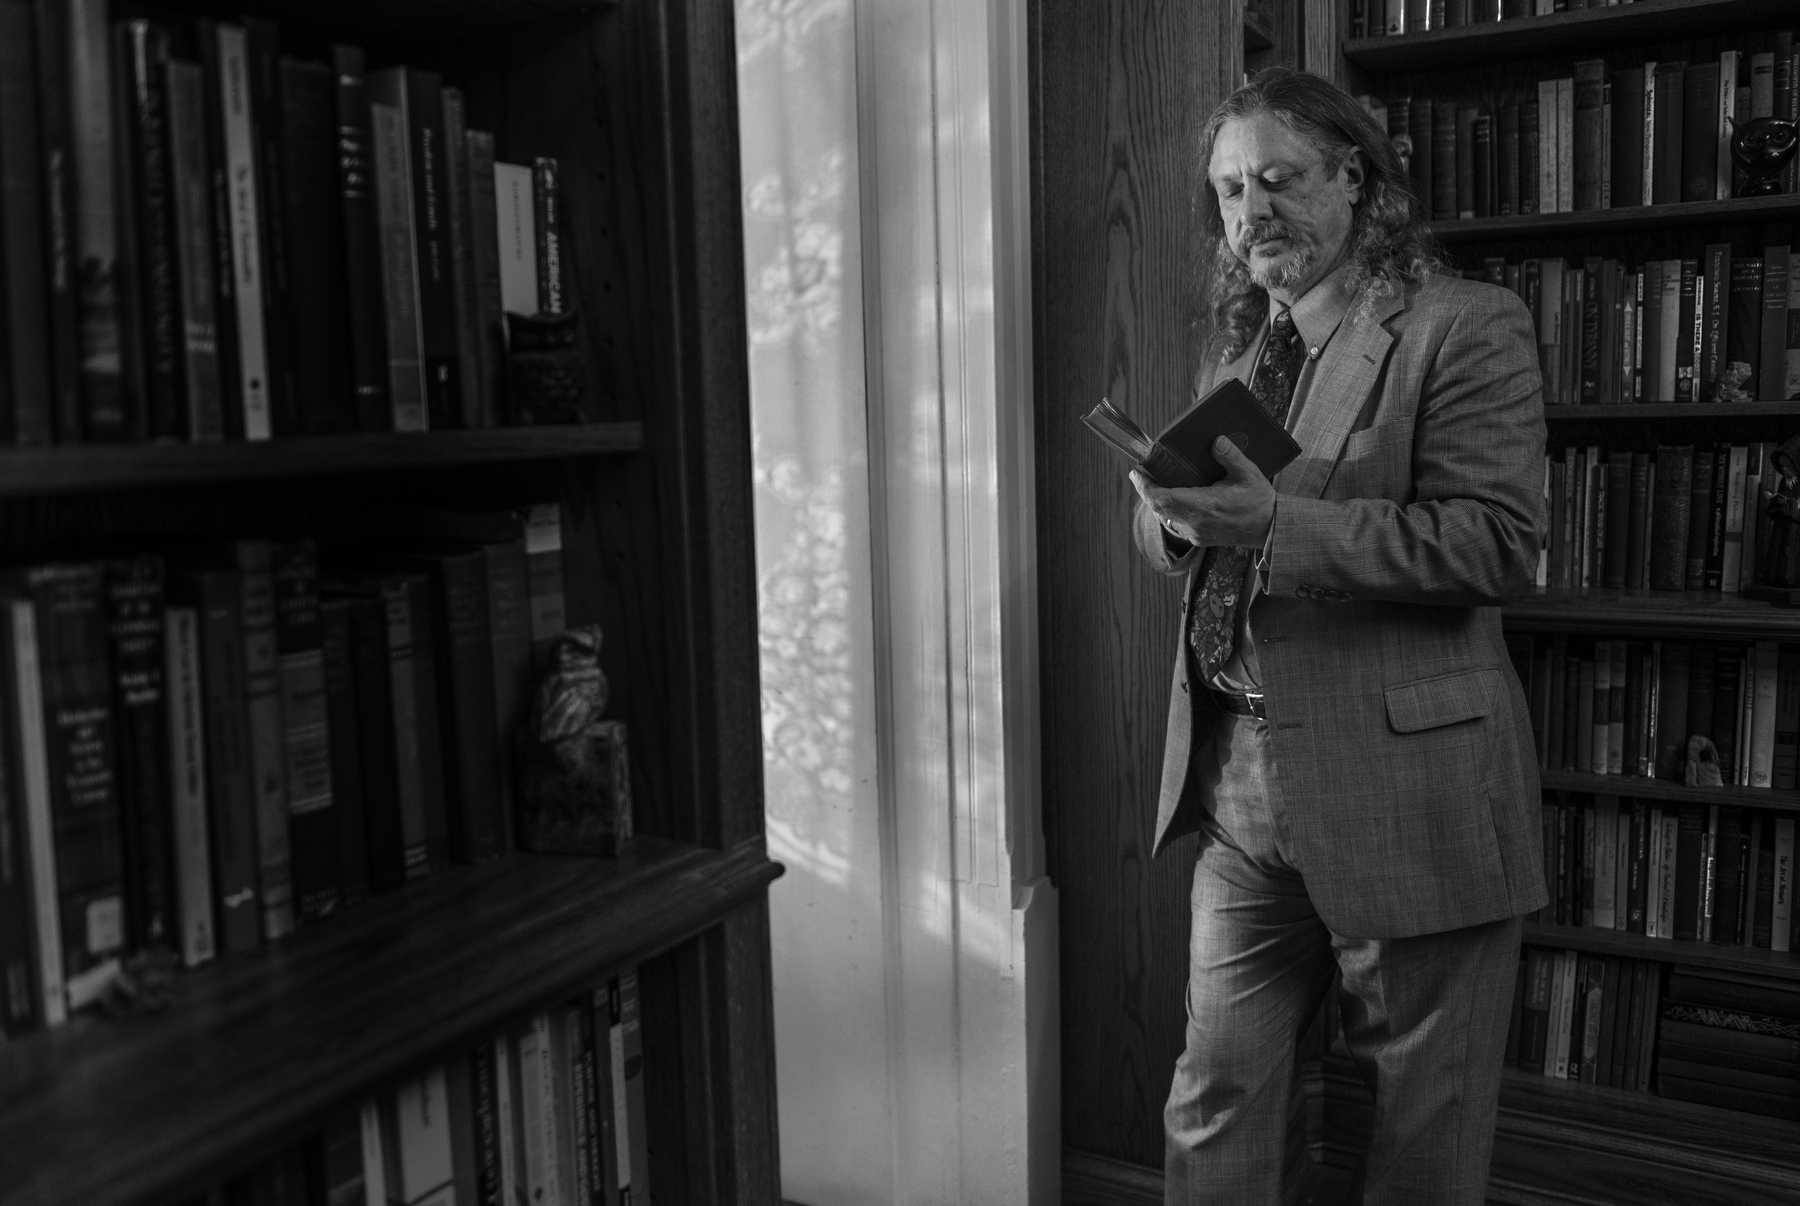 Professor of philosophy Randall Auxier poses for a portrait Monday, Nov. 21, 2016, in his Murphysboro home prior to its opening ceremony as the American Institute for Philosophical and Cultural Thought. The institute, which houses an estimated 35,000 books and scholarly articles, was established as a research site for humanities students in response to the closure of SIU's Center for Dewey Studies.